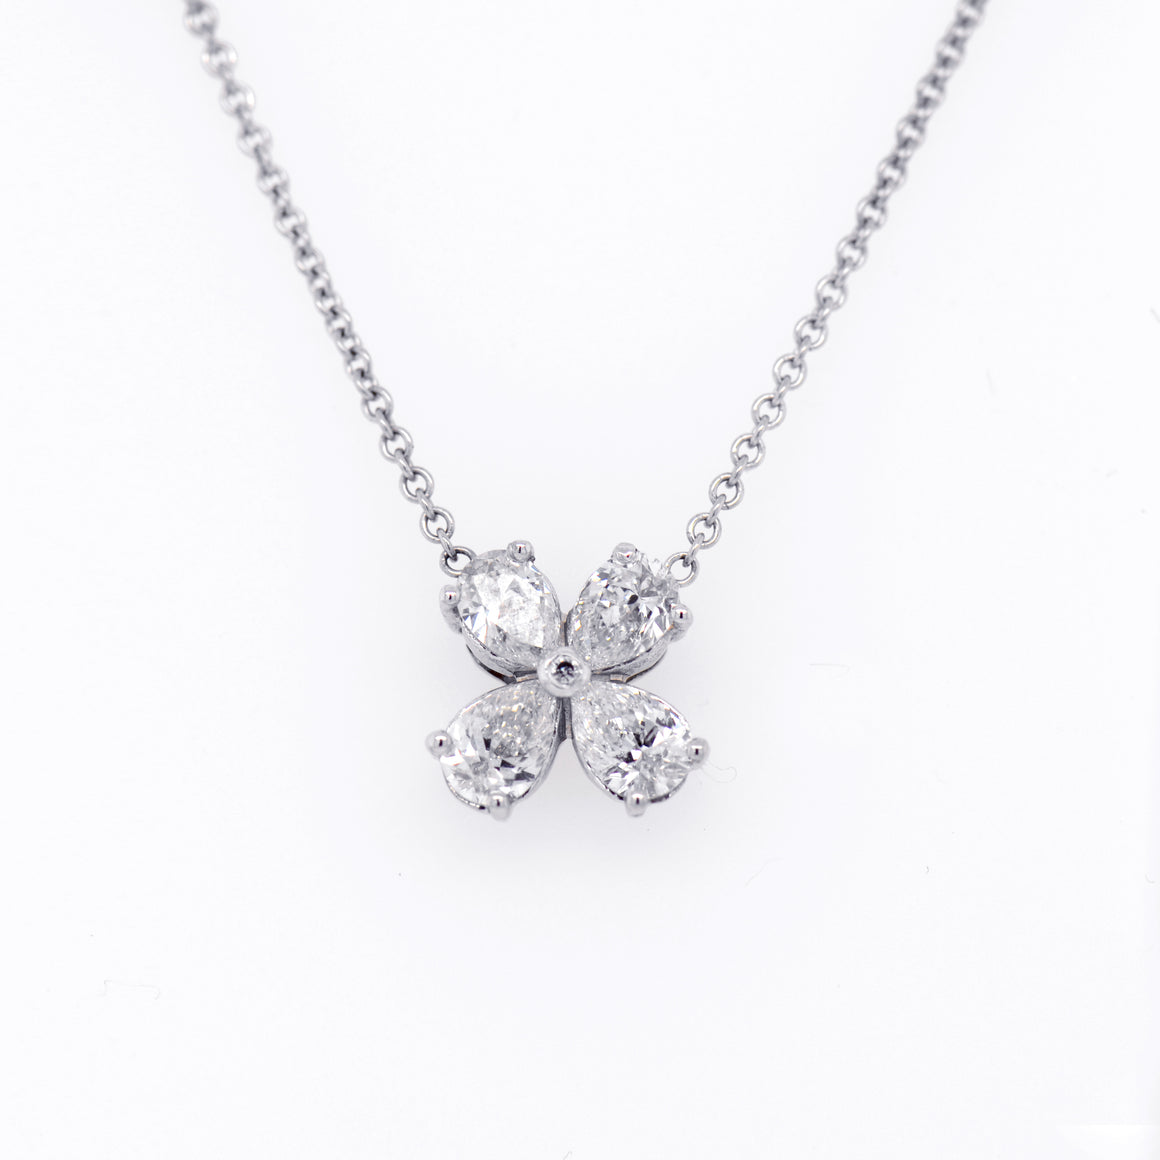 18K White Gold Diamond Clover Necklace